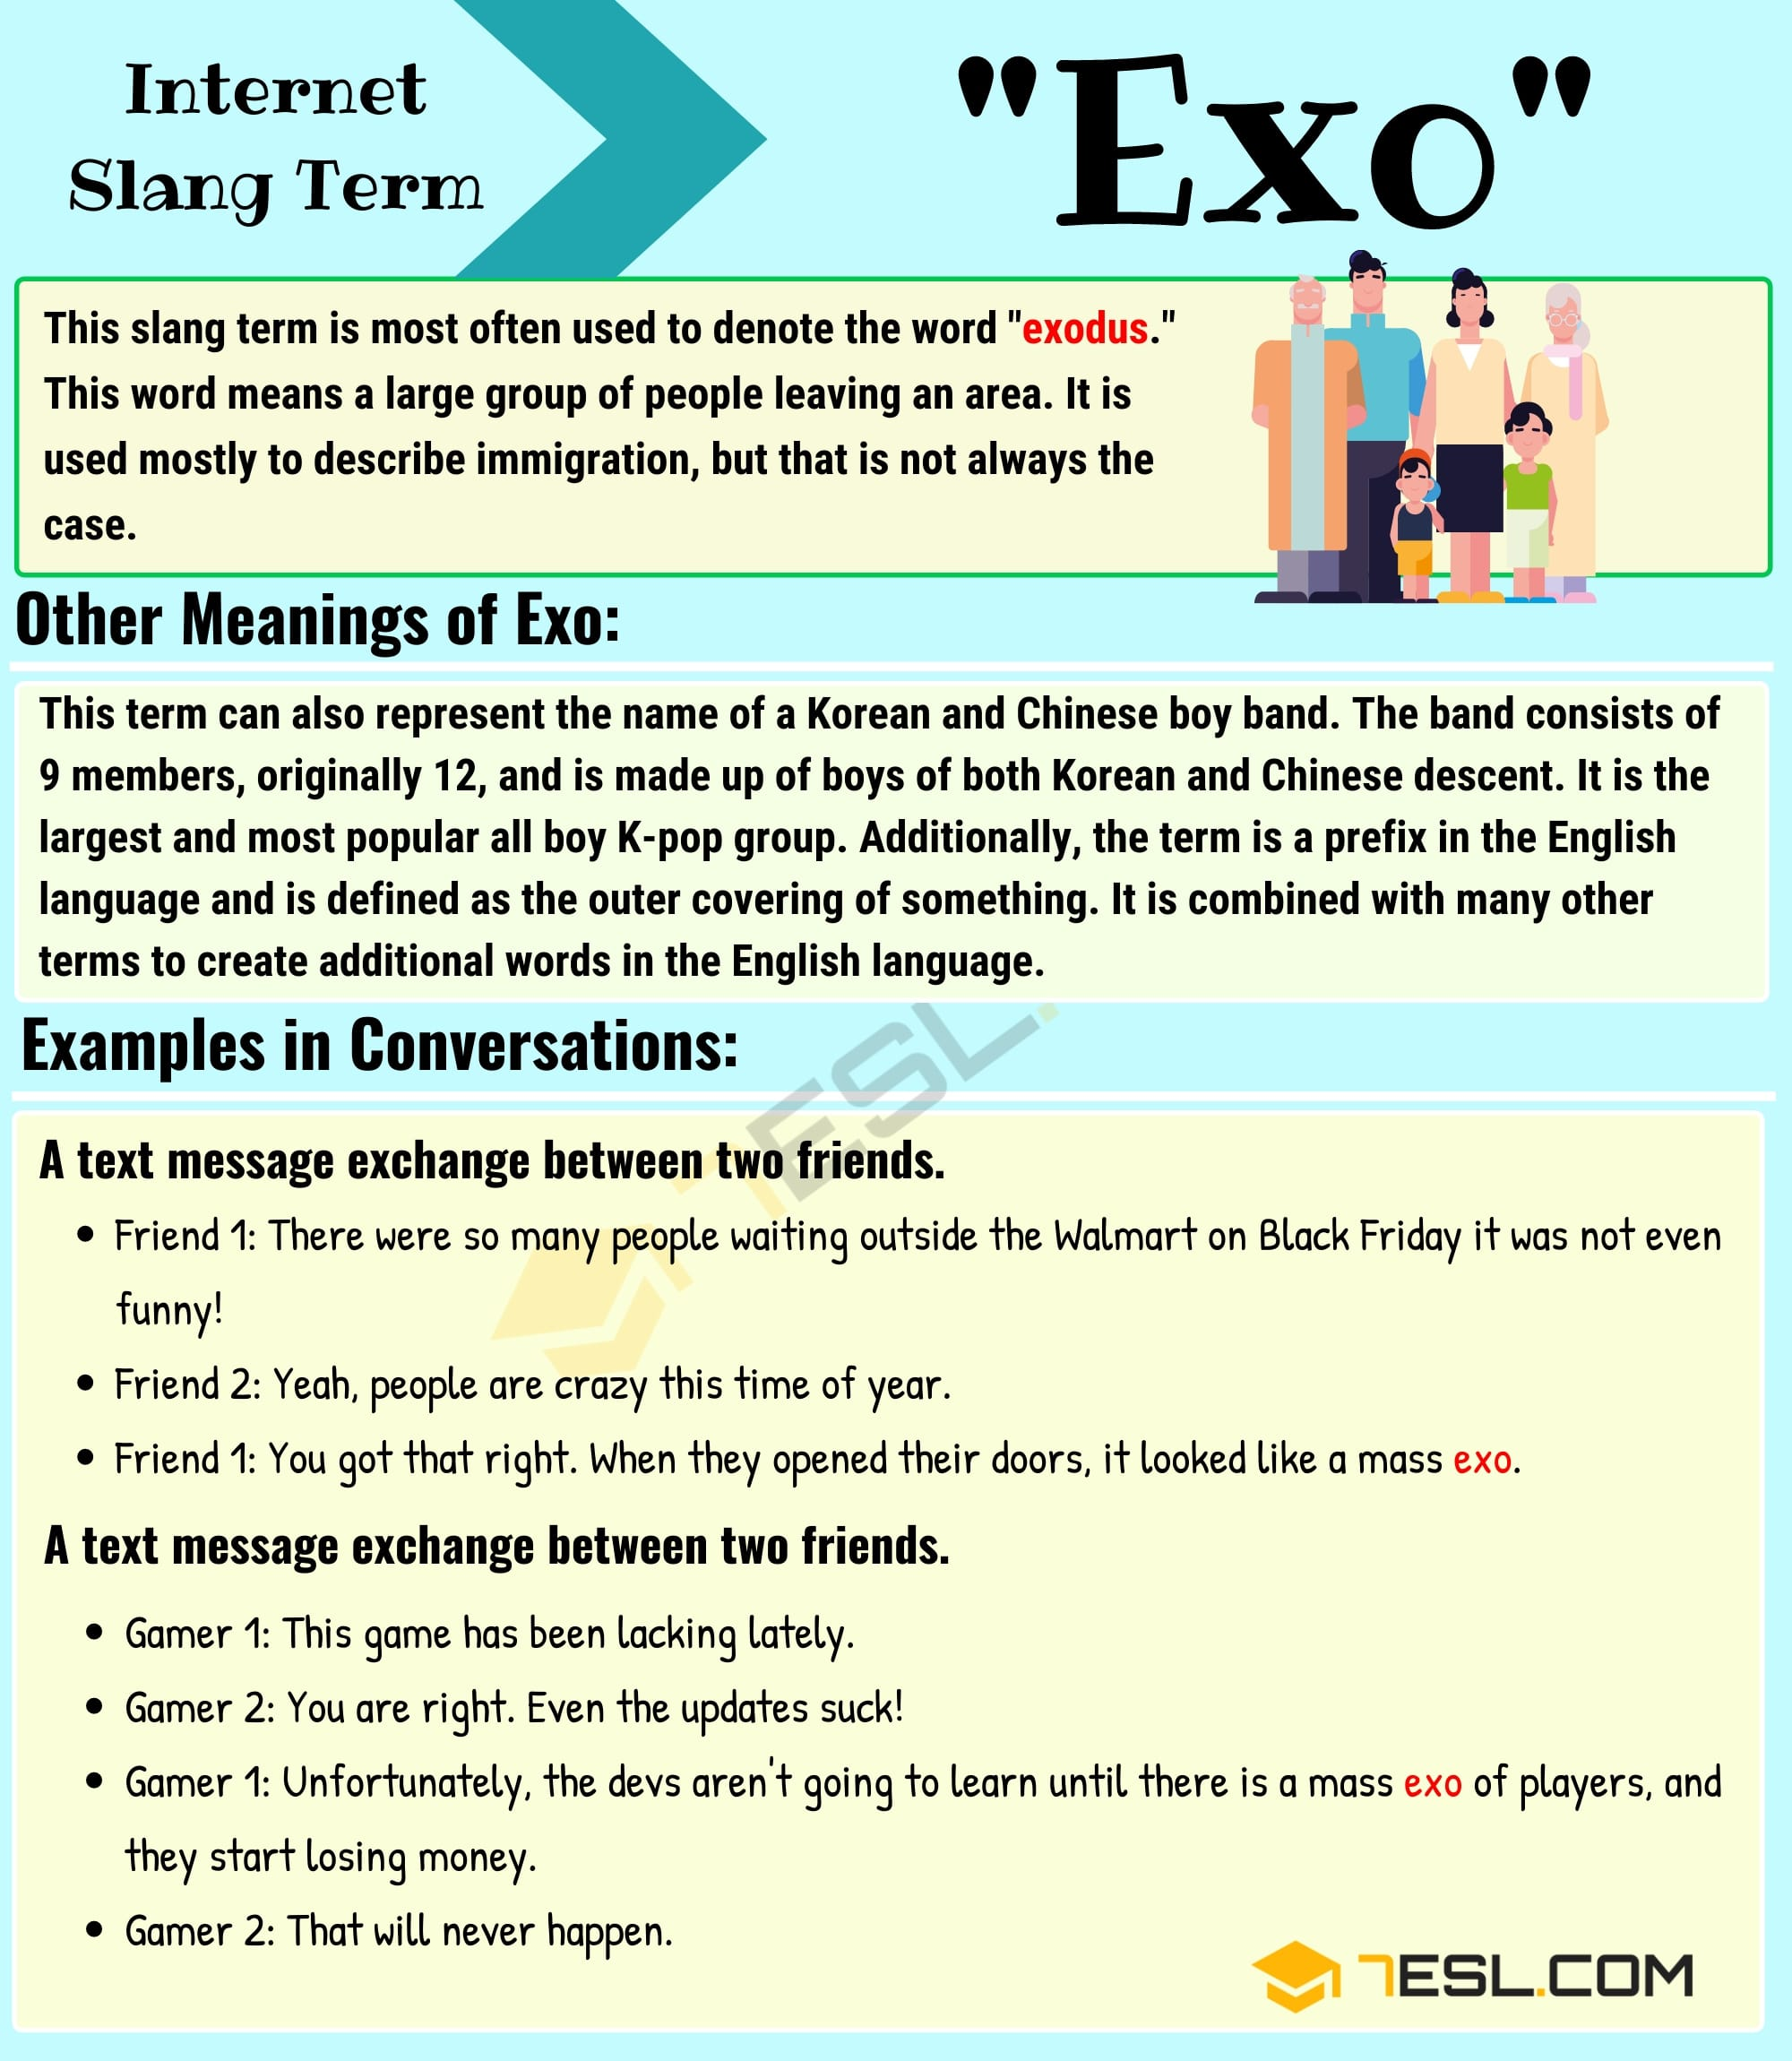 Exo Meaning: What Does the Term EXO Mean and Stand for? 1